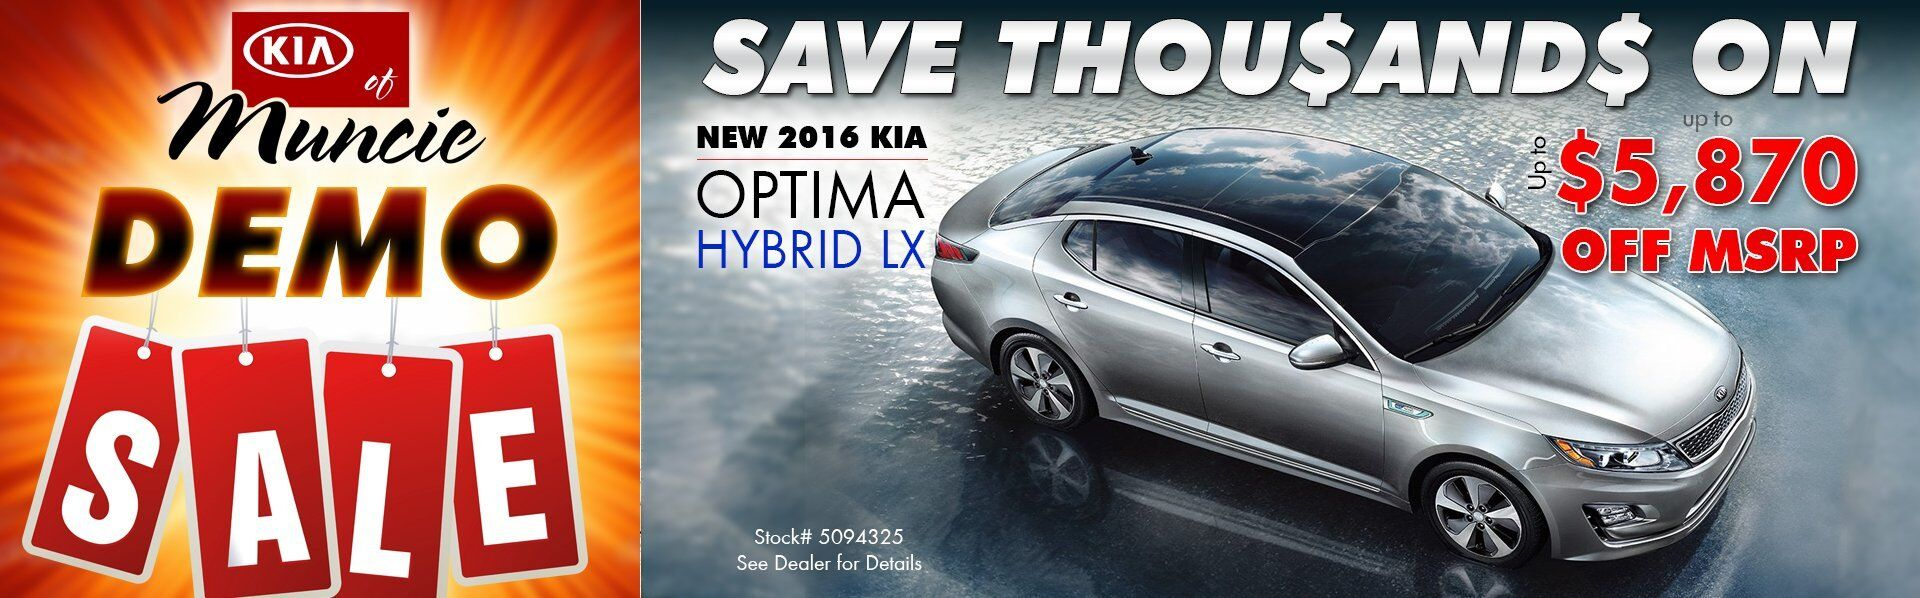 DEMO SALE - 2016 Optima Hybrid